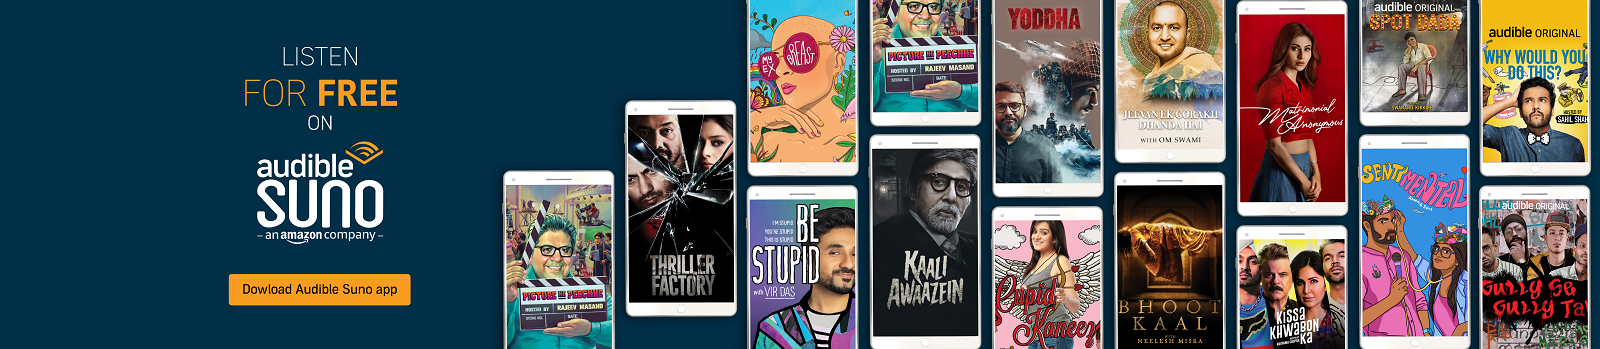 Audible Suno, Listen to India's most famous voices